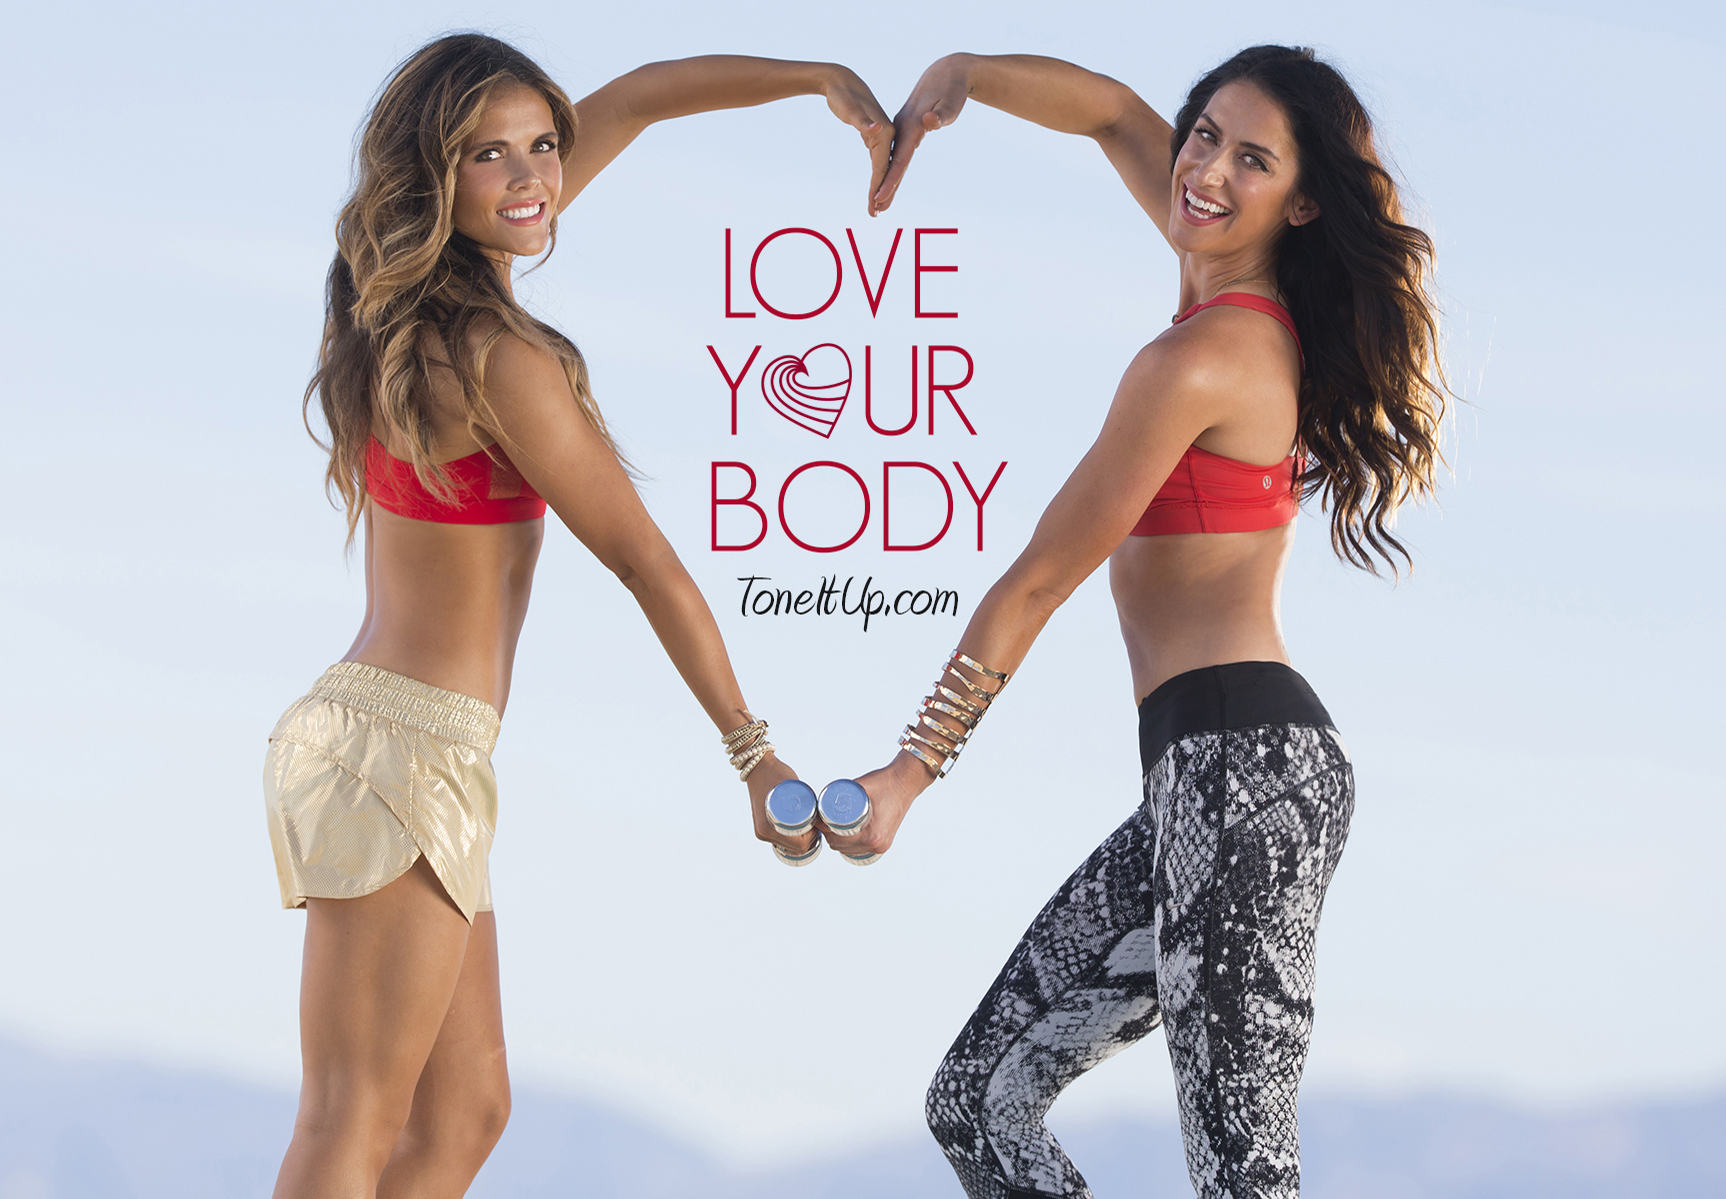 Love-Your-Body-Challenge-TIU-toneitup